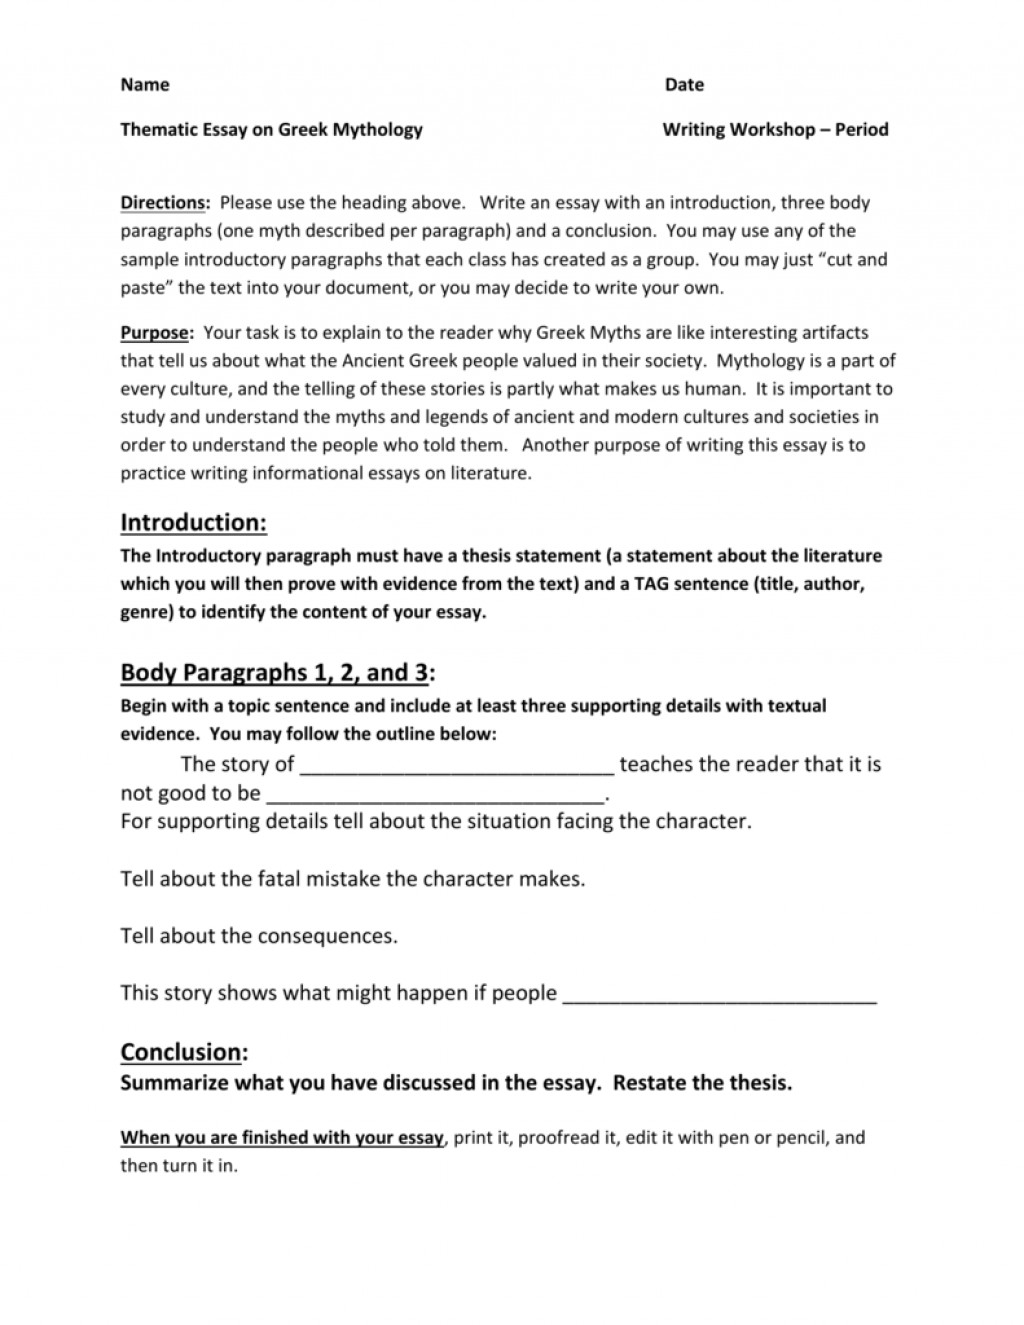 007 006654670 1 Thematic Essay Fearsome Photo Examples Rubric Analysis Template Large